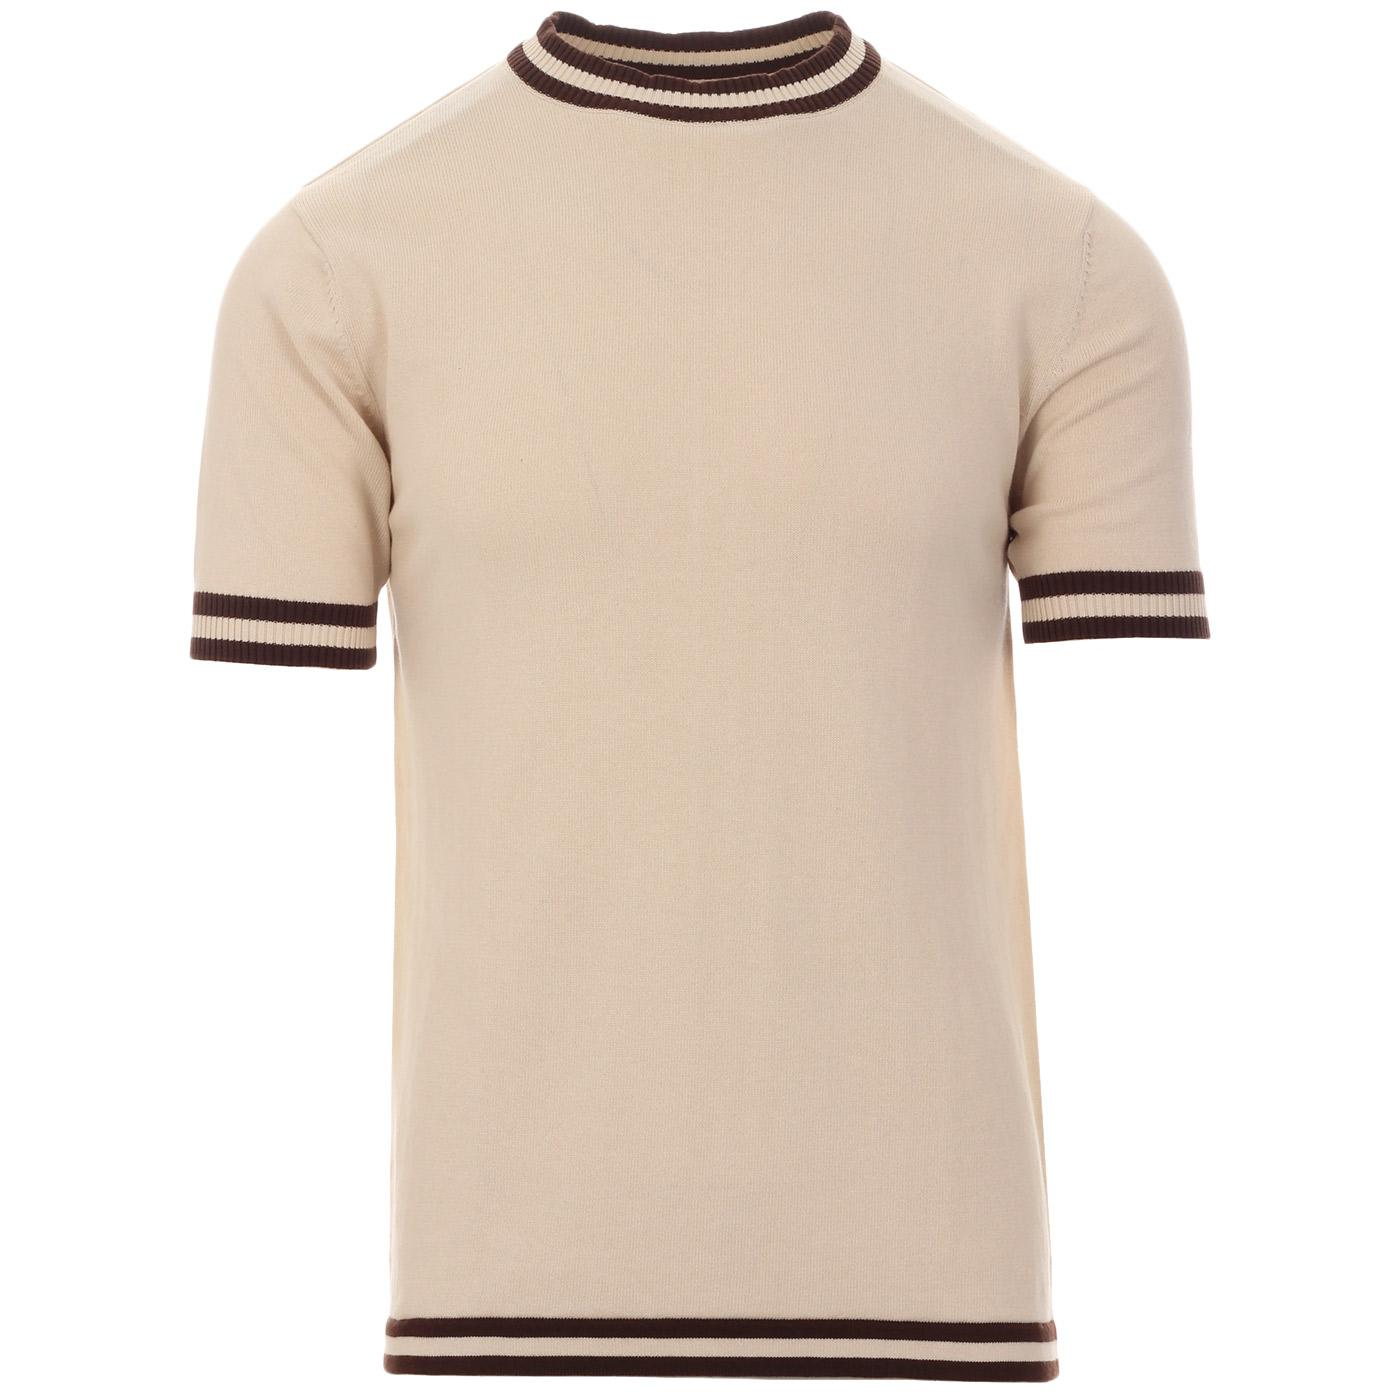 Madcap England Moon Retro Mod Knitted Tipped Tee in Birch